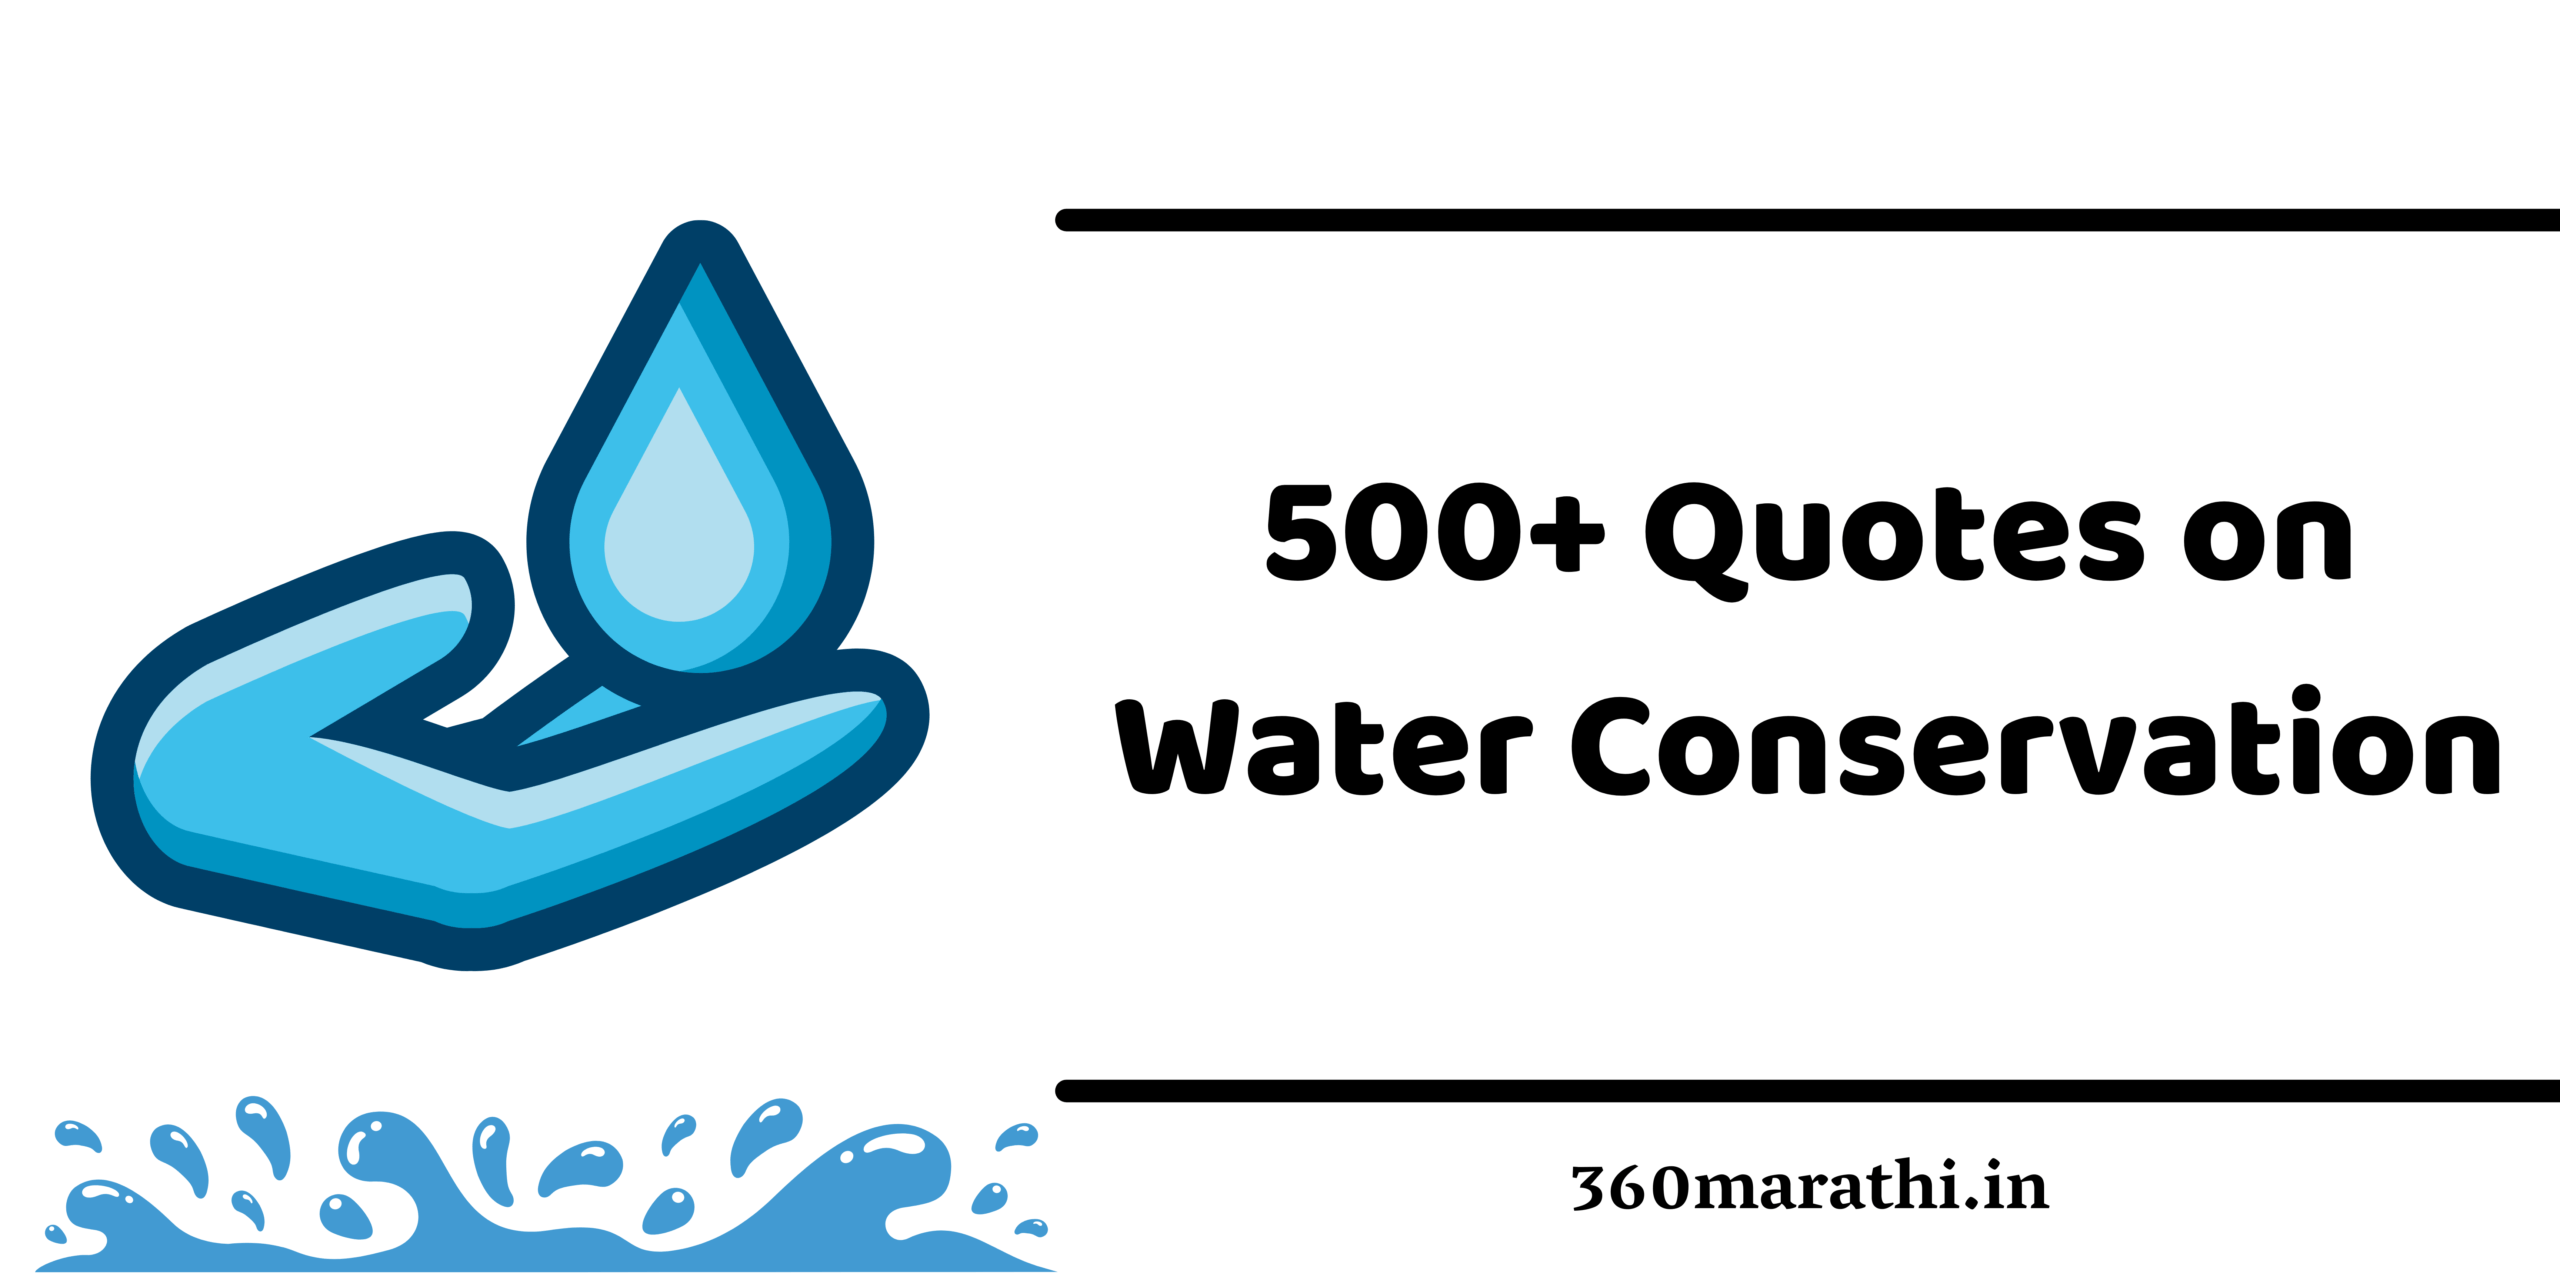 Save Water Quotes : 500+ Quotes on Water Conservation